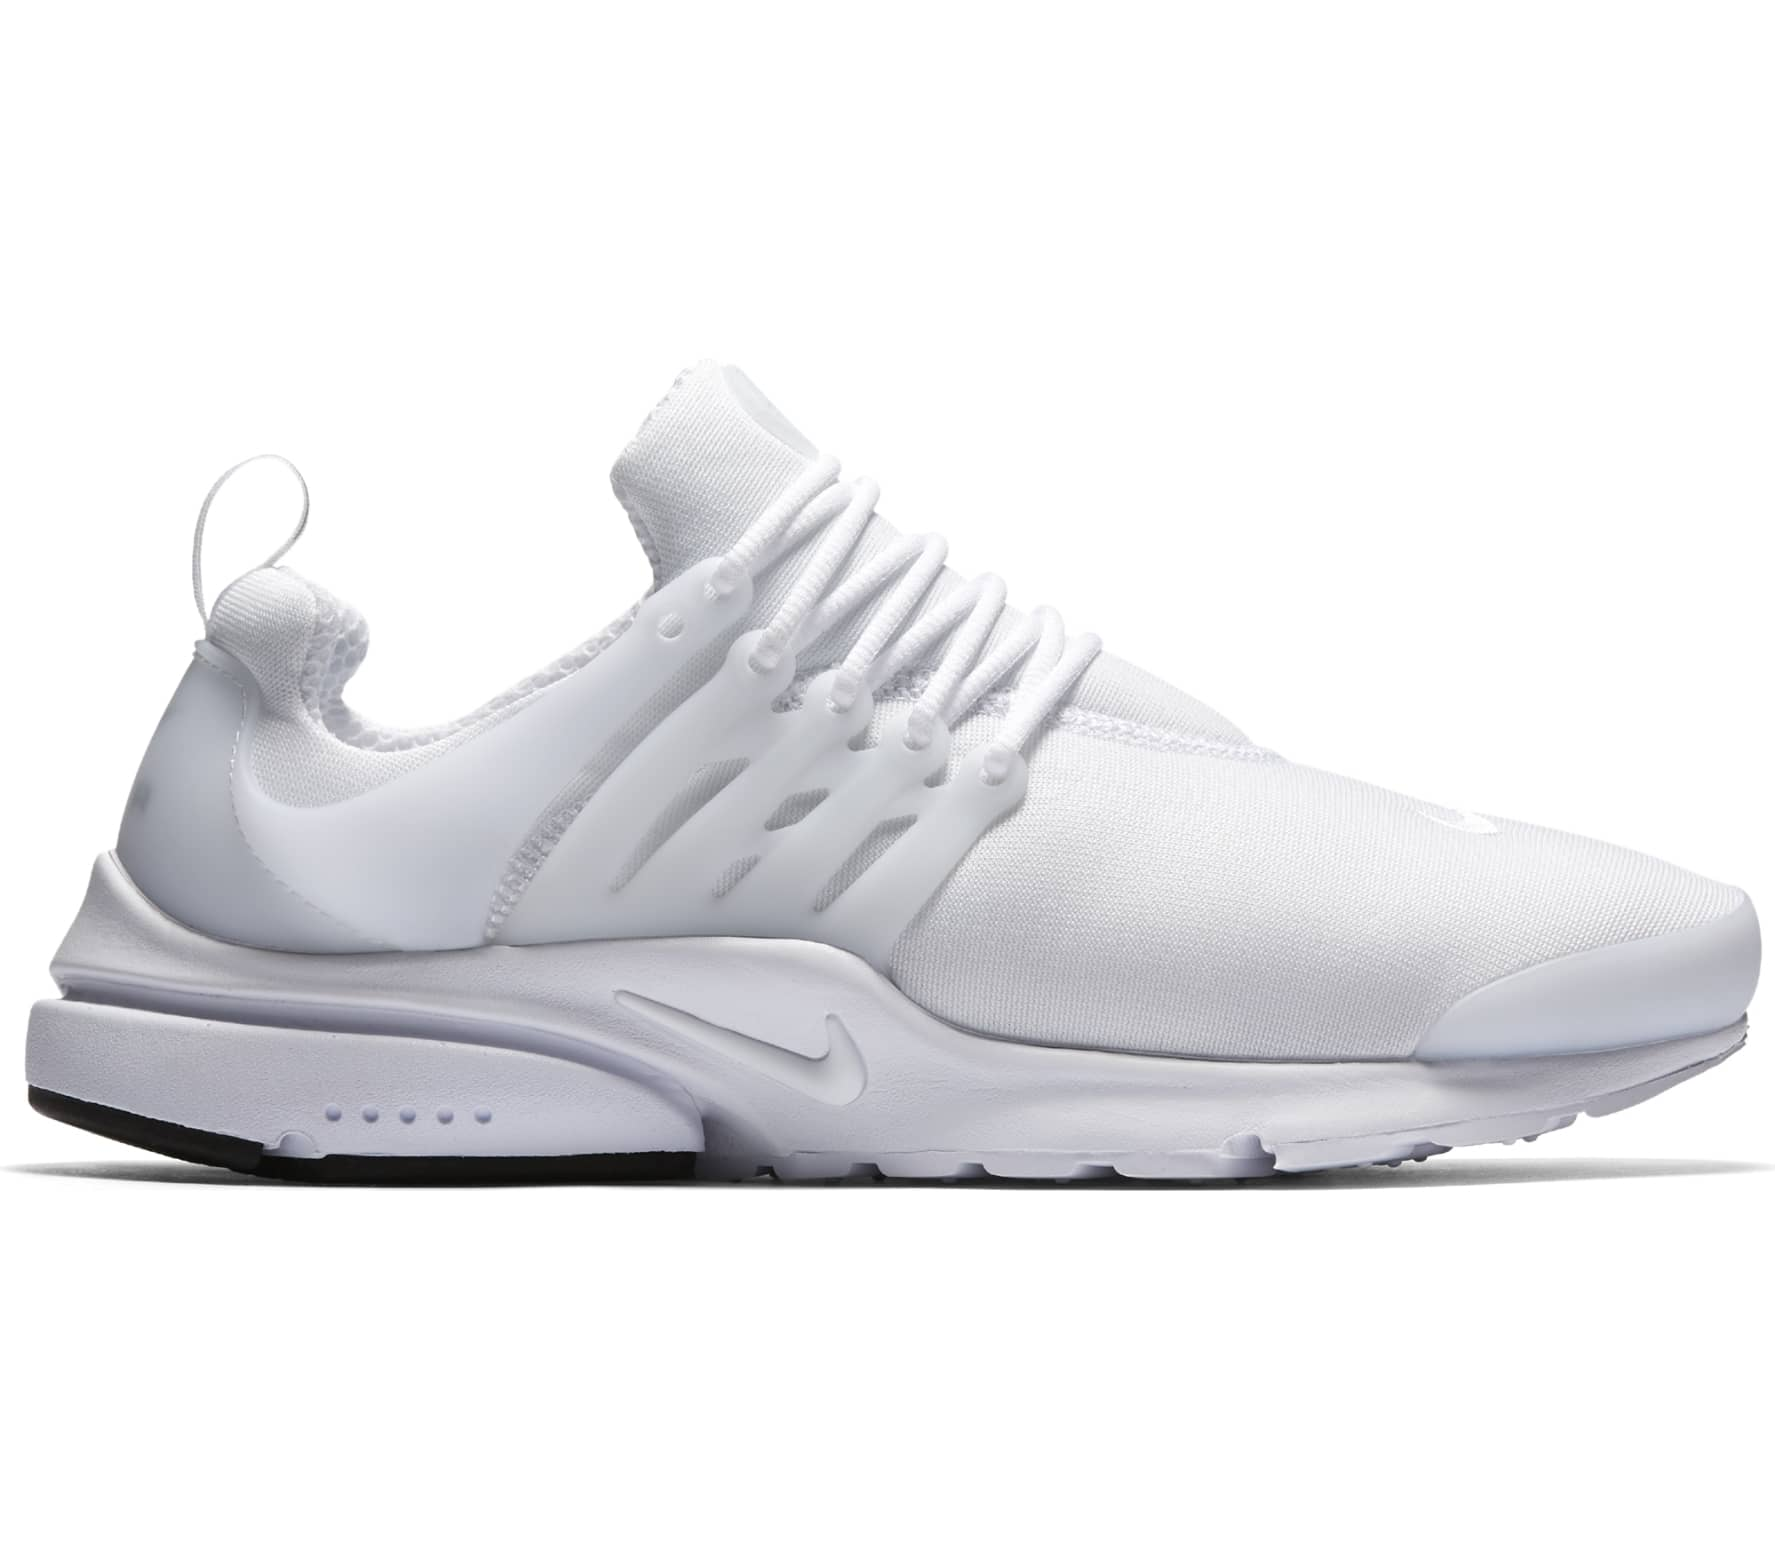 436b578bc0 Nike - Air Presto Essential men's trainers (white/black) - buy it at ...